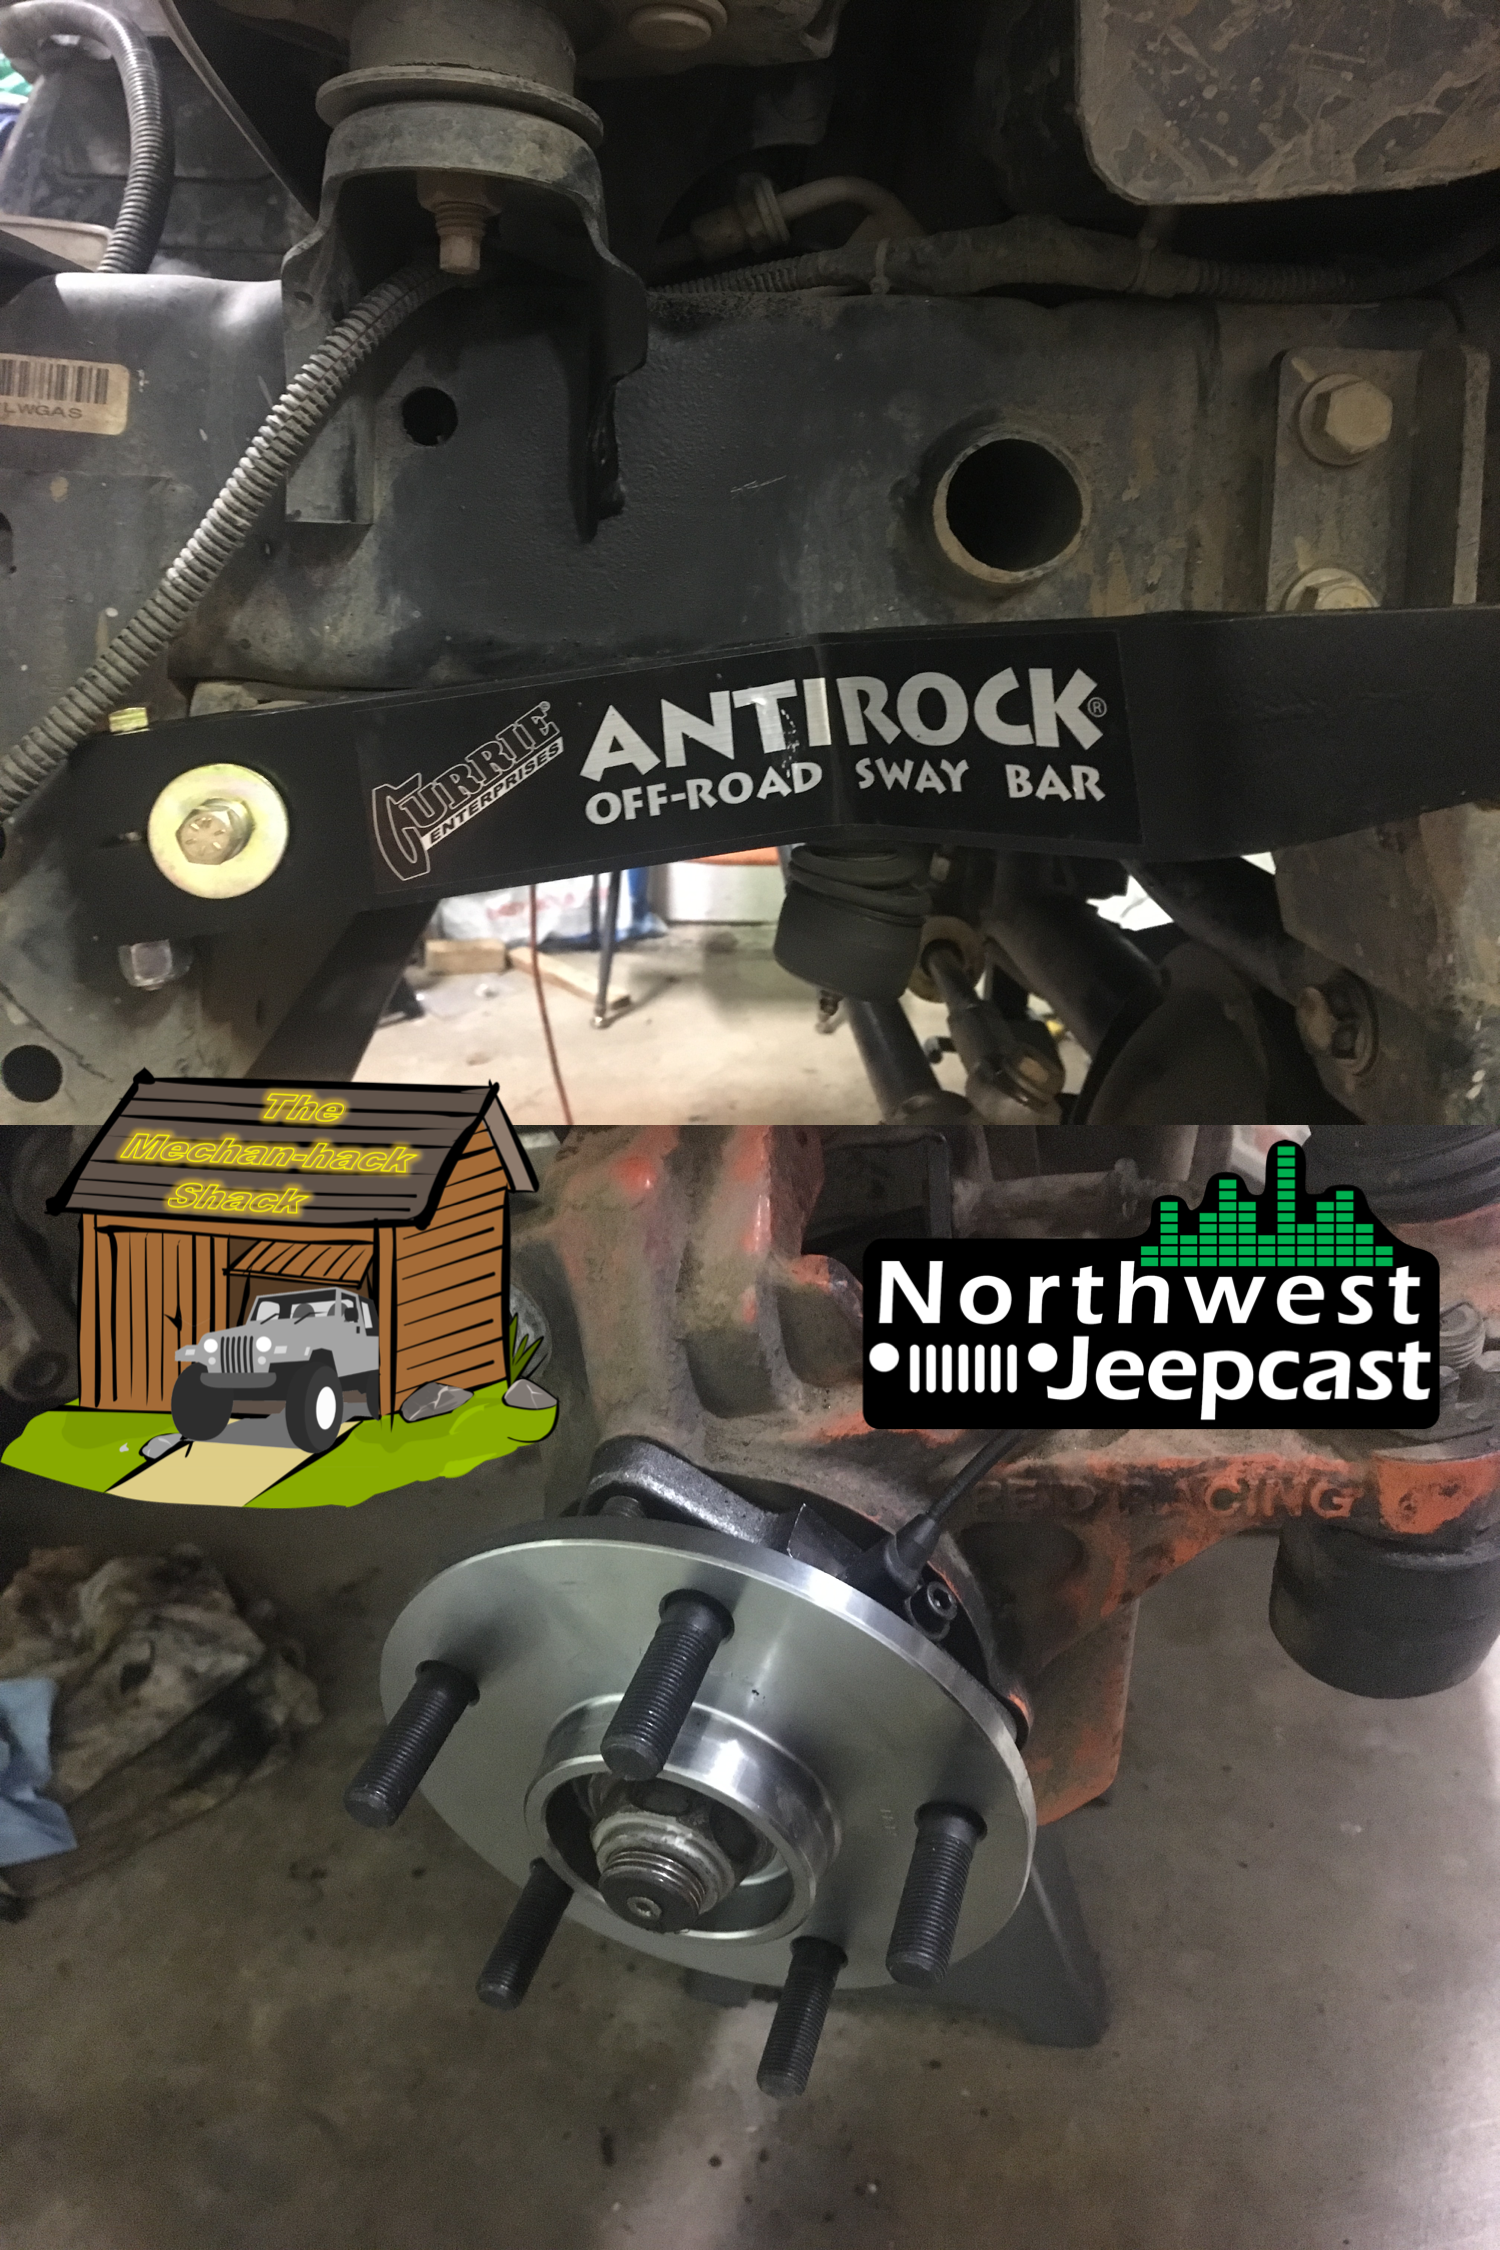 Northridge4x4 coupon code